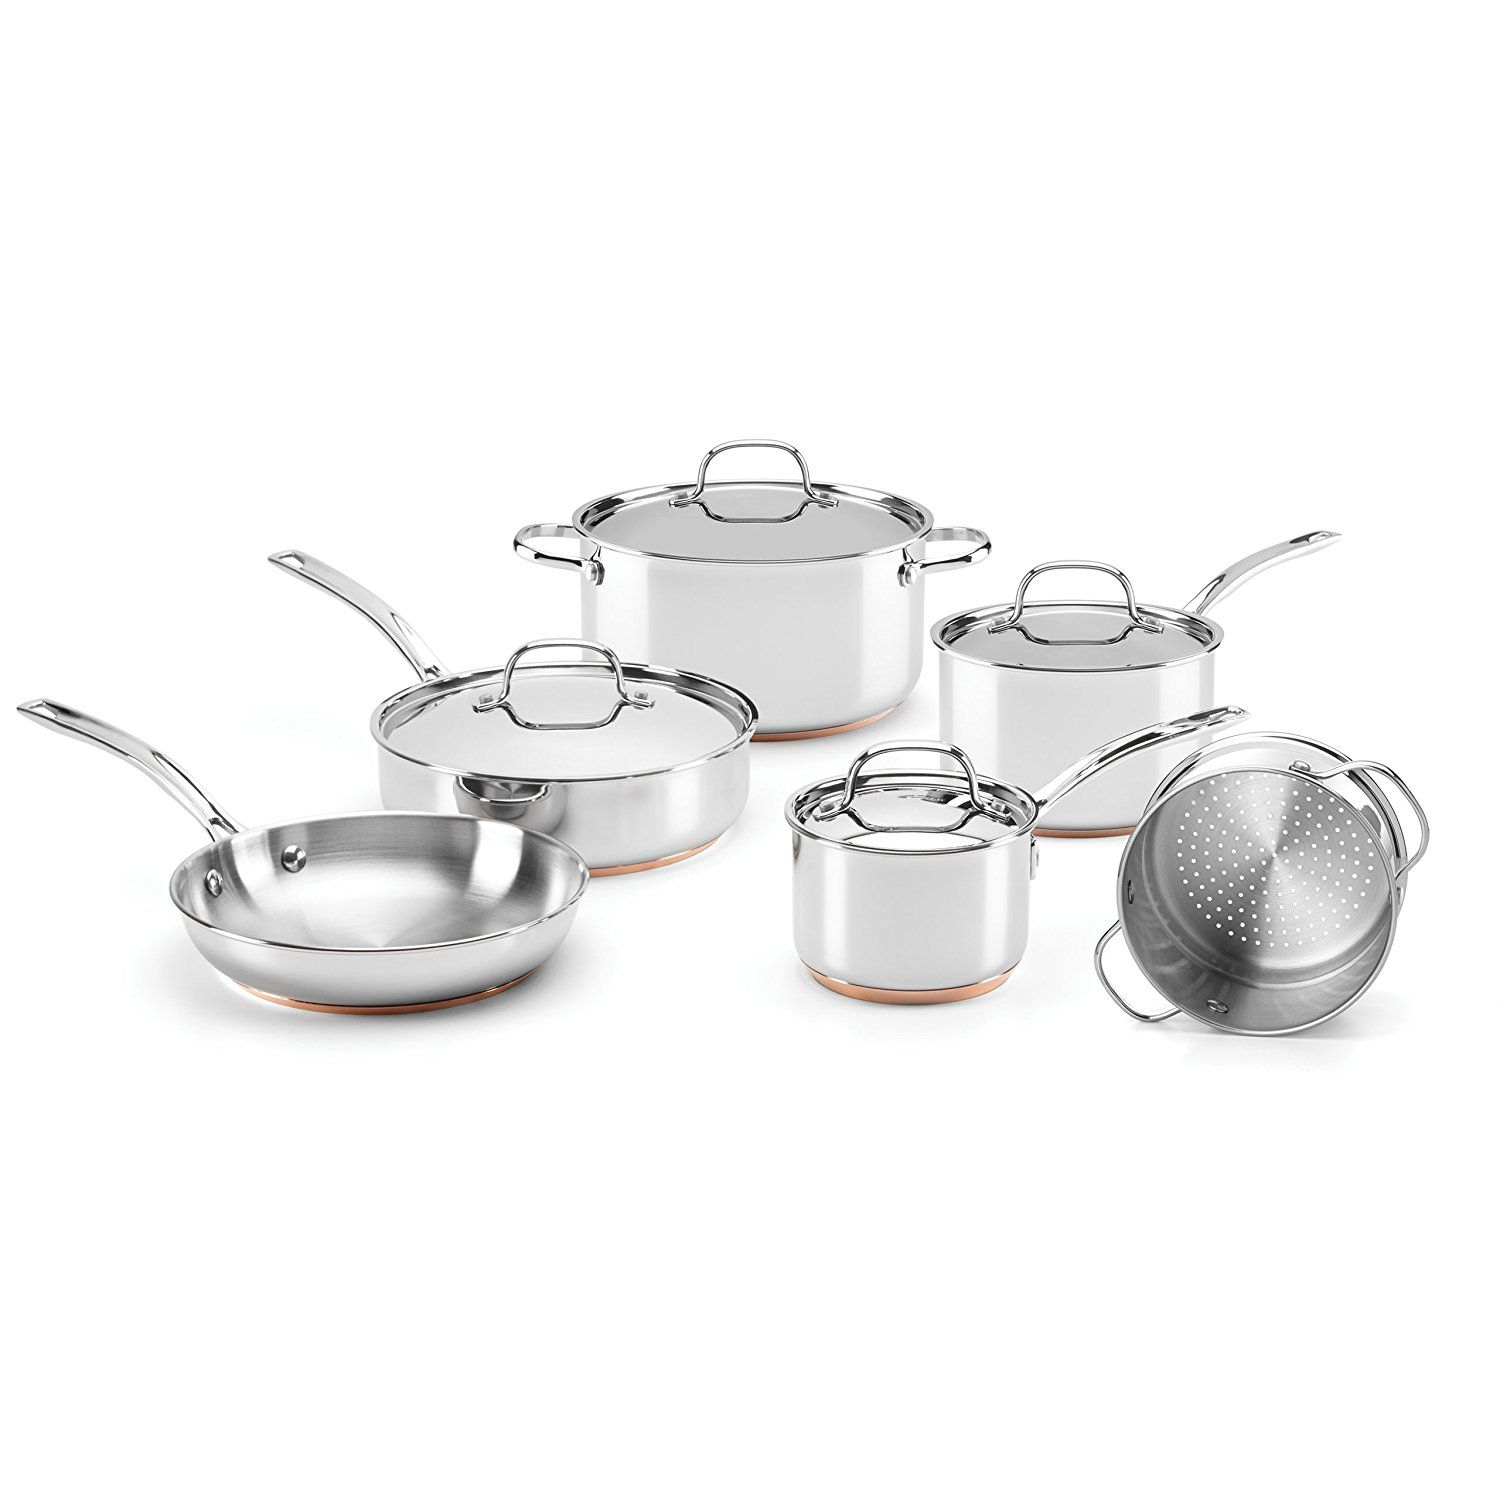 Food And Wine For Gorham Stainless Steel 10 Piece Cookware Set